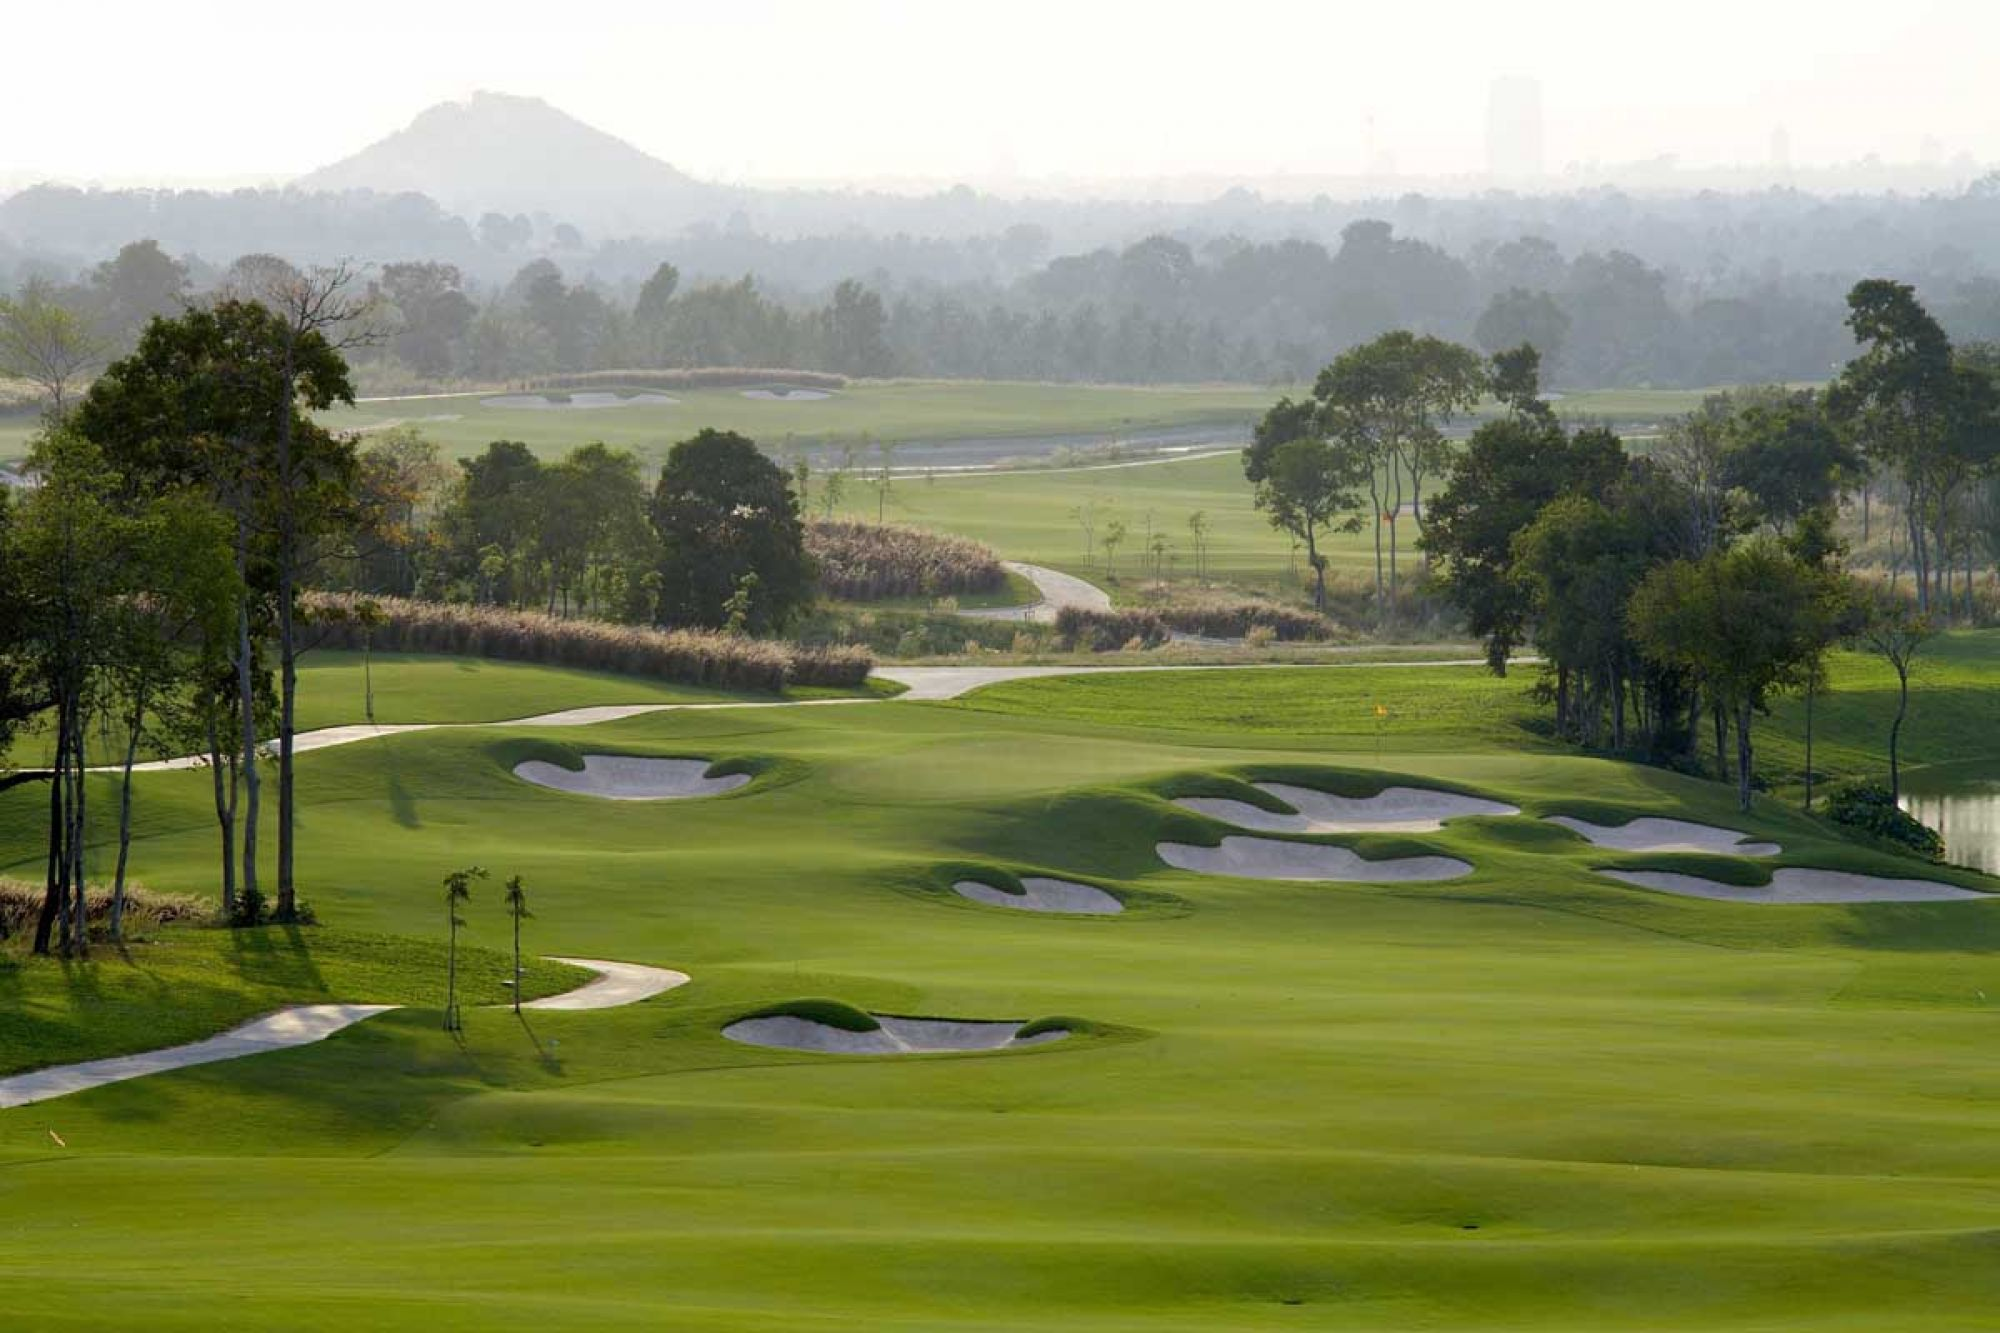 Siam Country Club Plantation Course has several of the most popular golf course near Pattaya